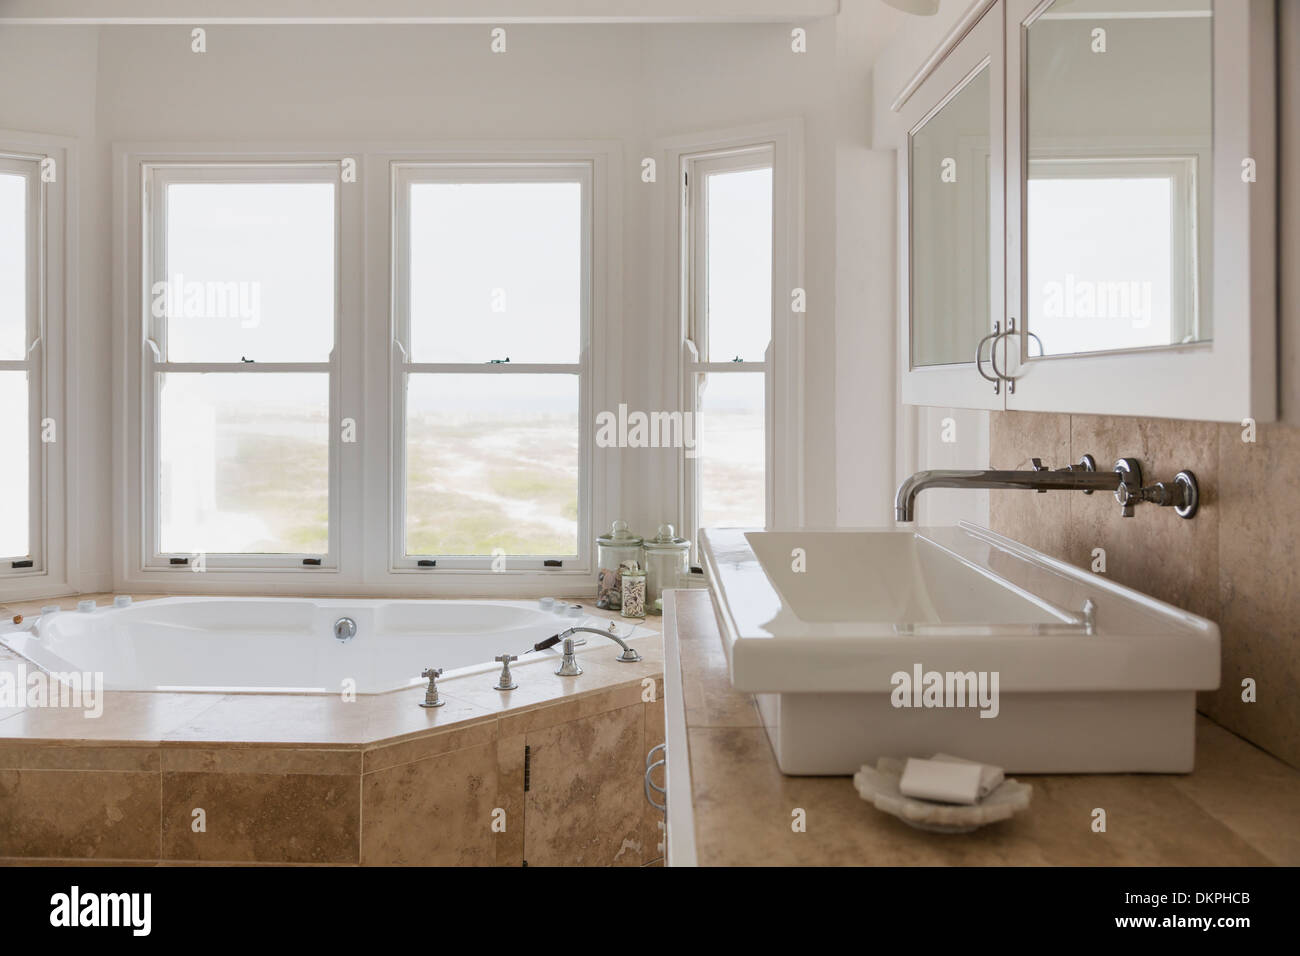 Sink and jacuzzi tub in luxury master bathroom Stock Photo: 63806187 ...